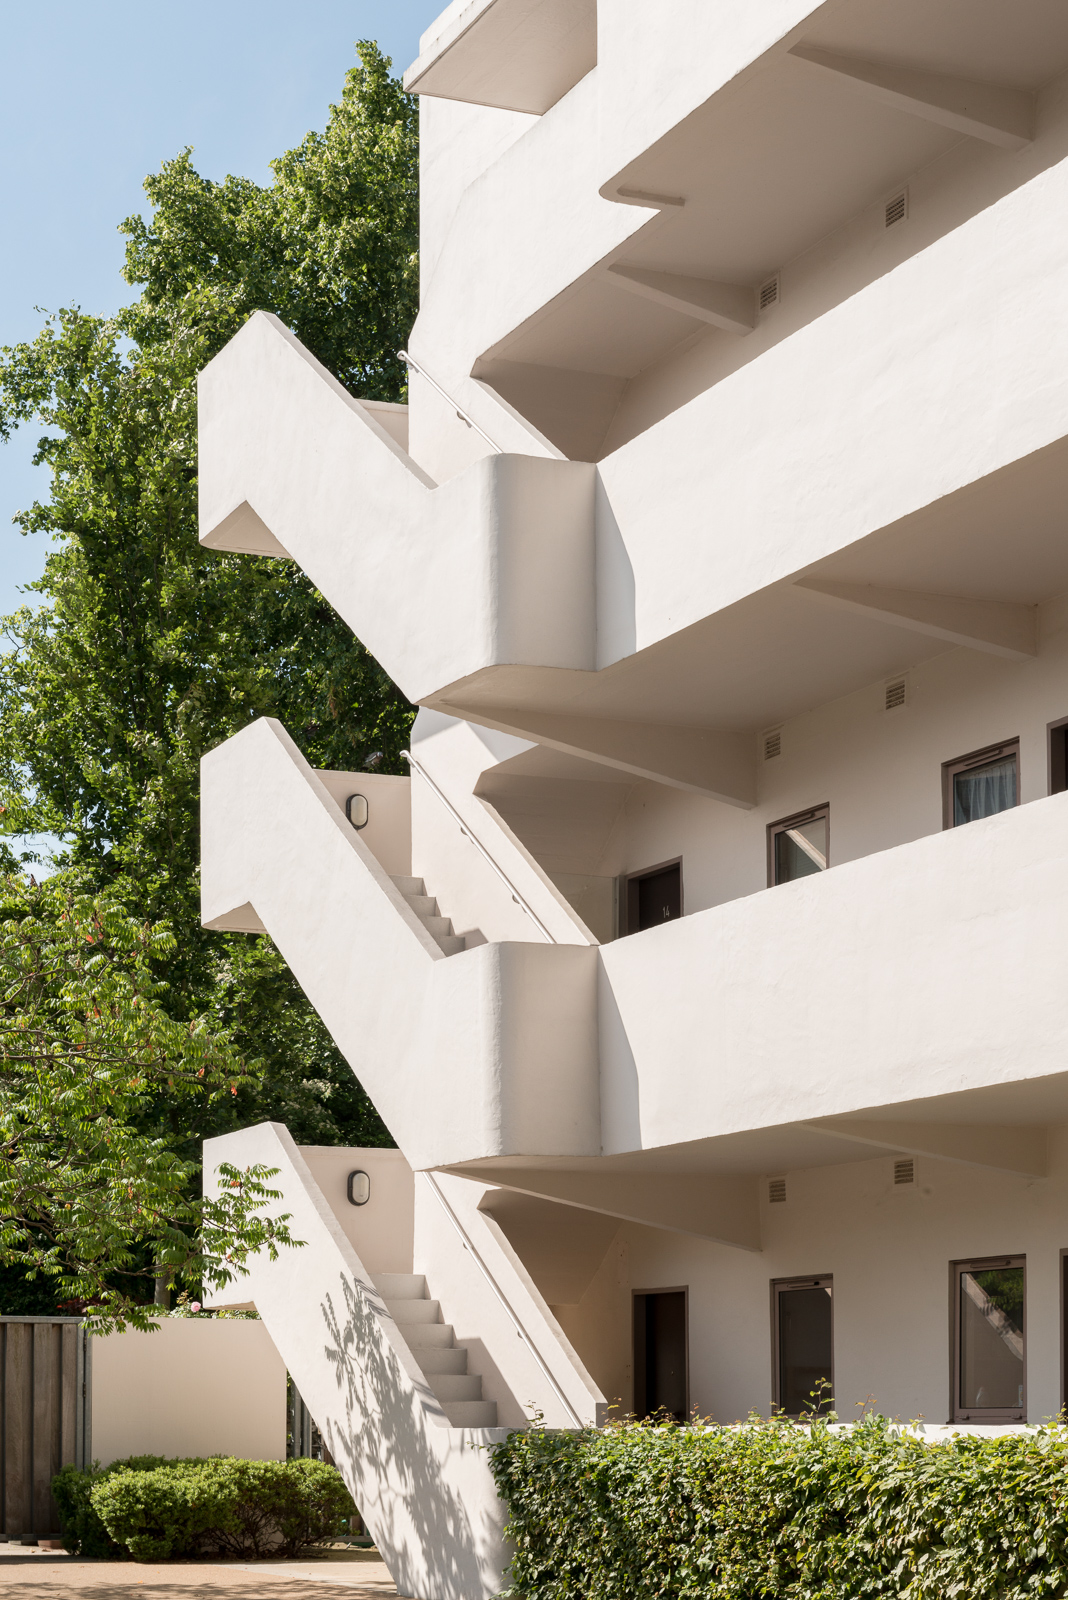 Isokon, London, The Modern House